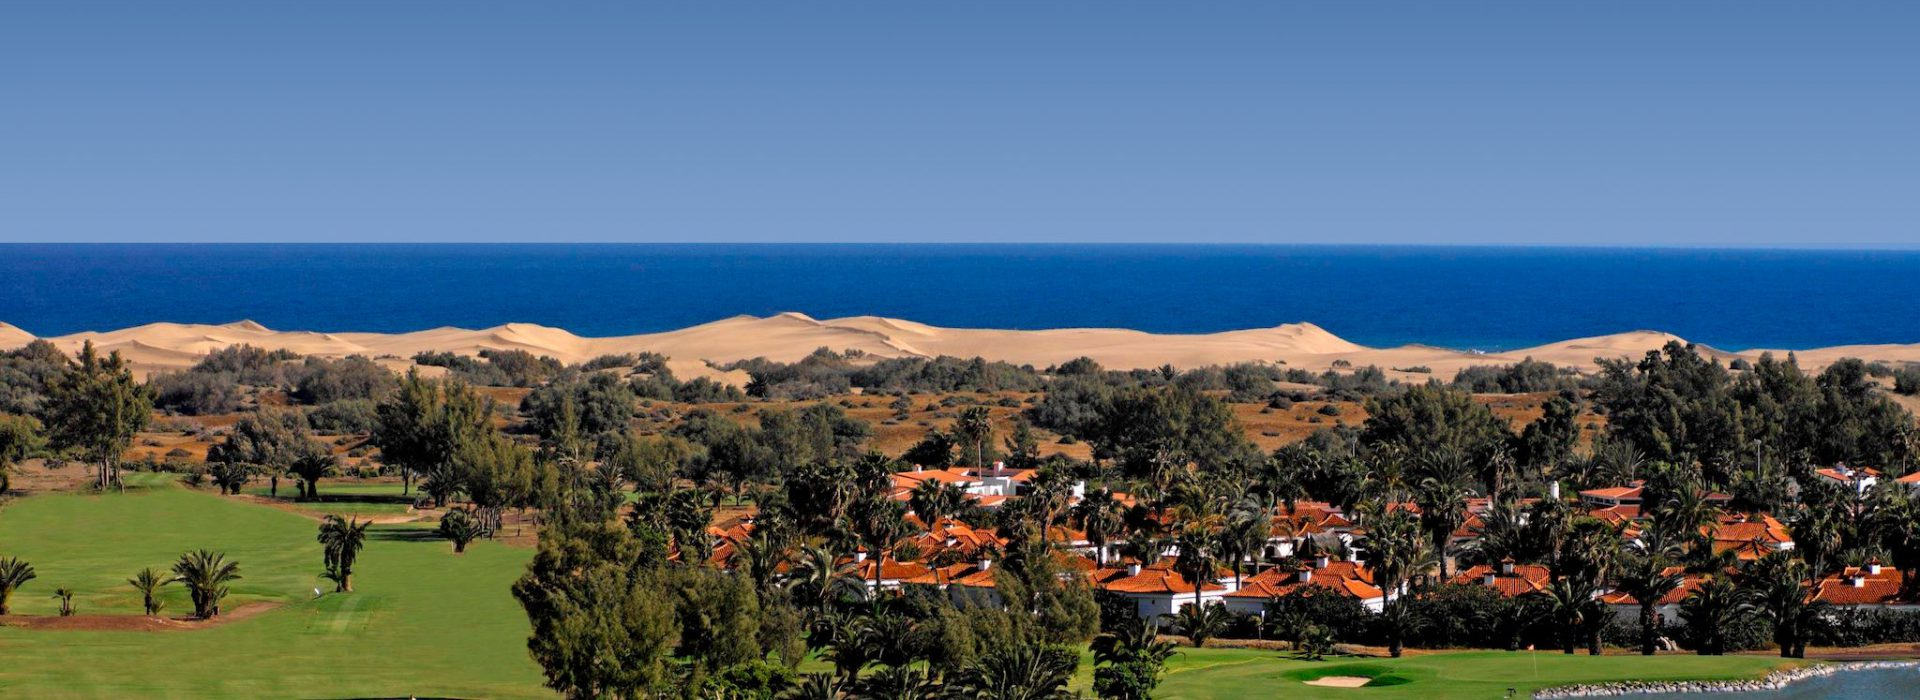 Maspalomas Golf